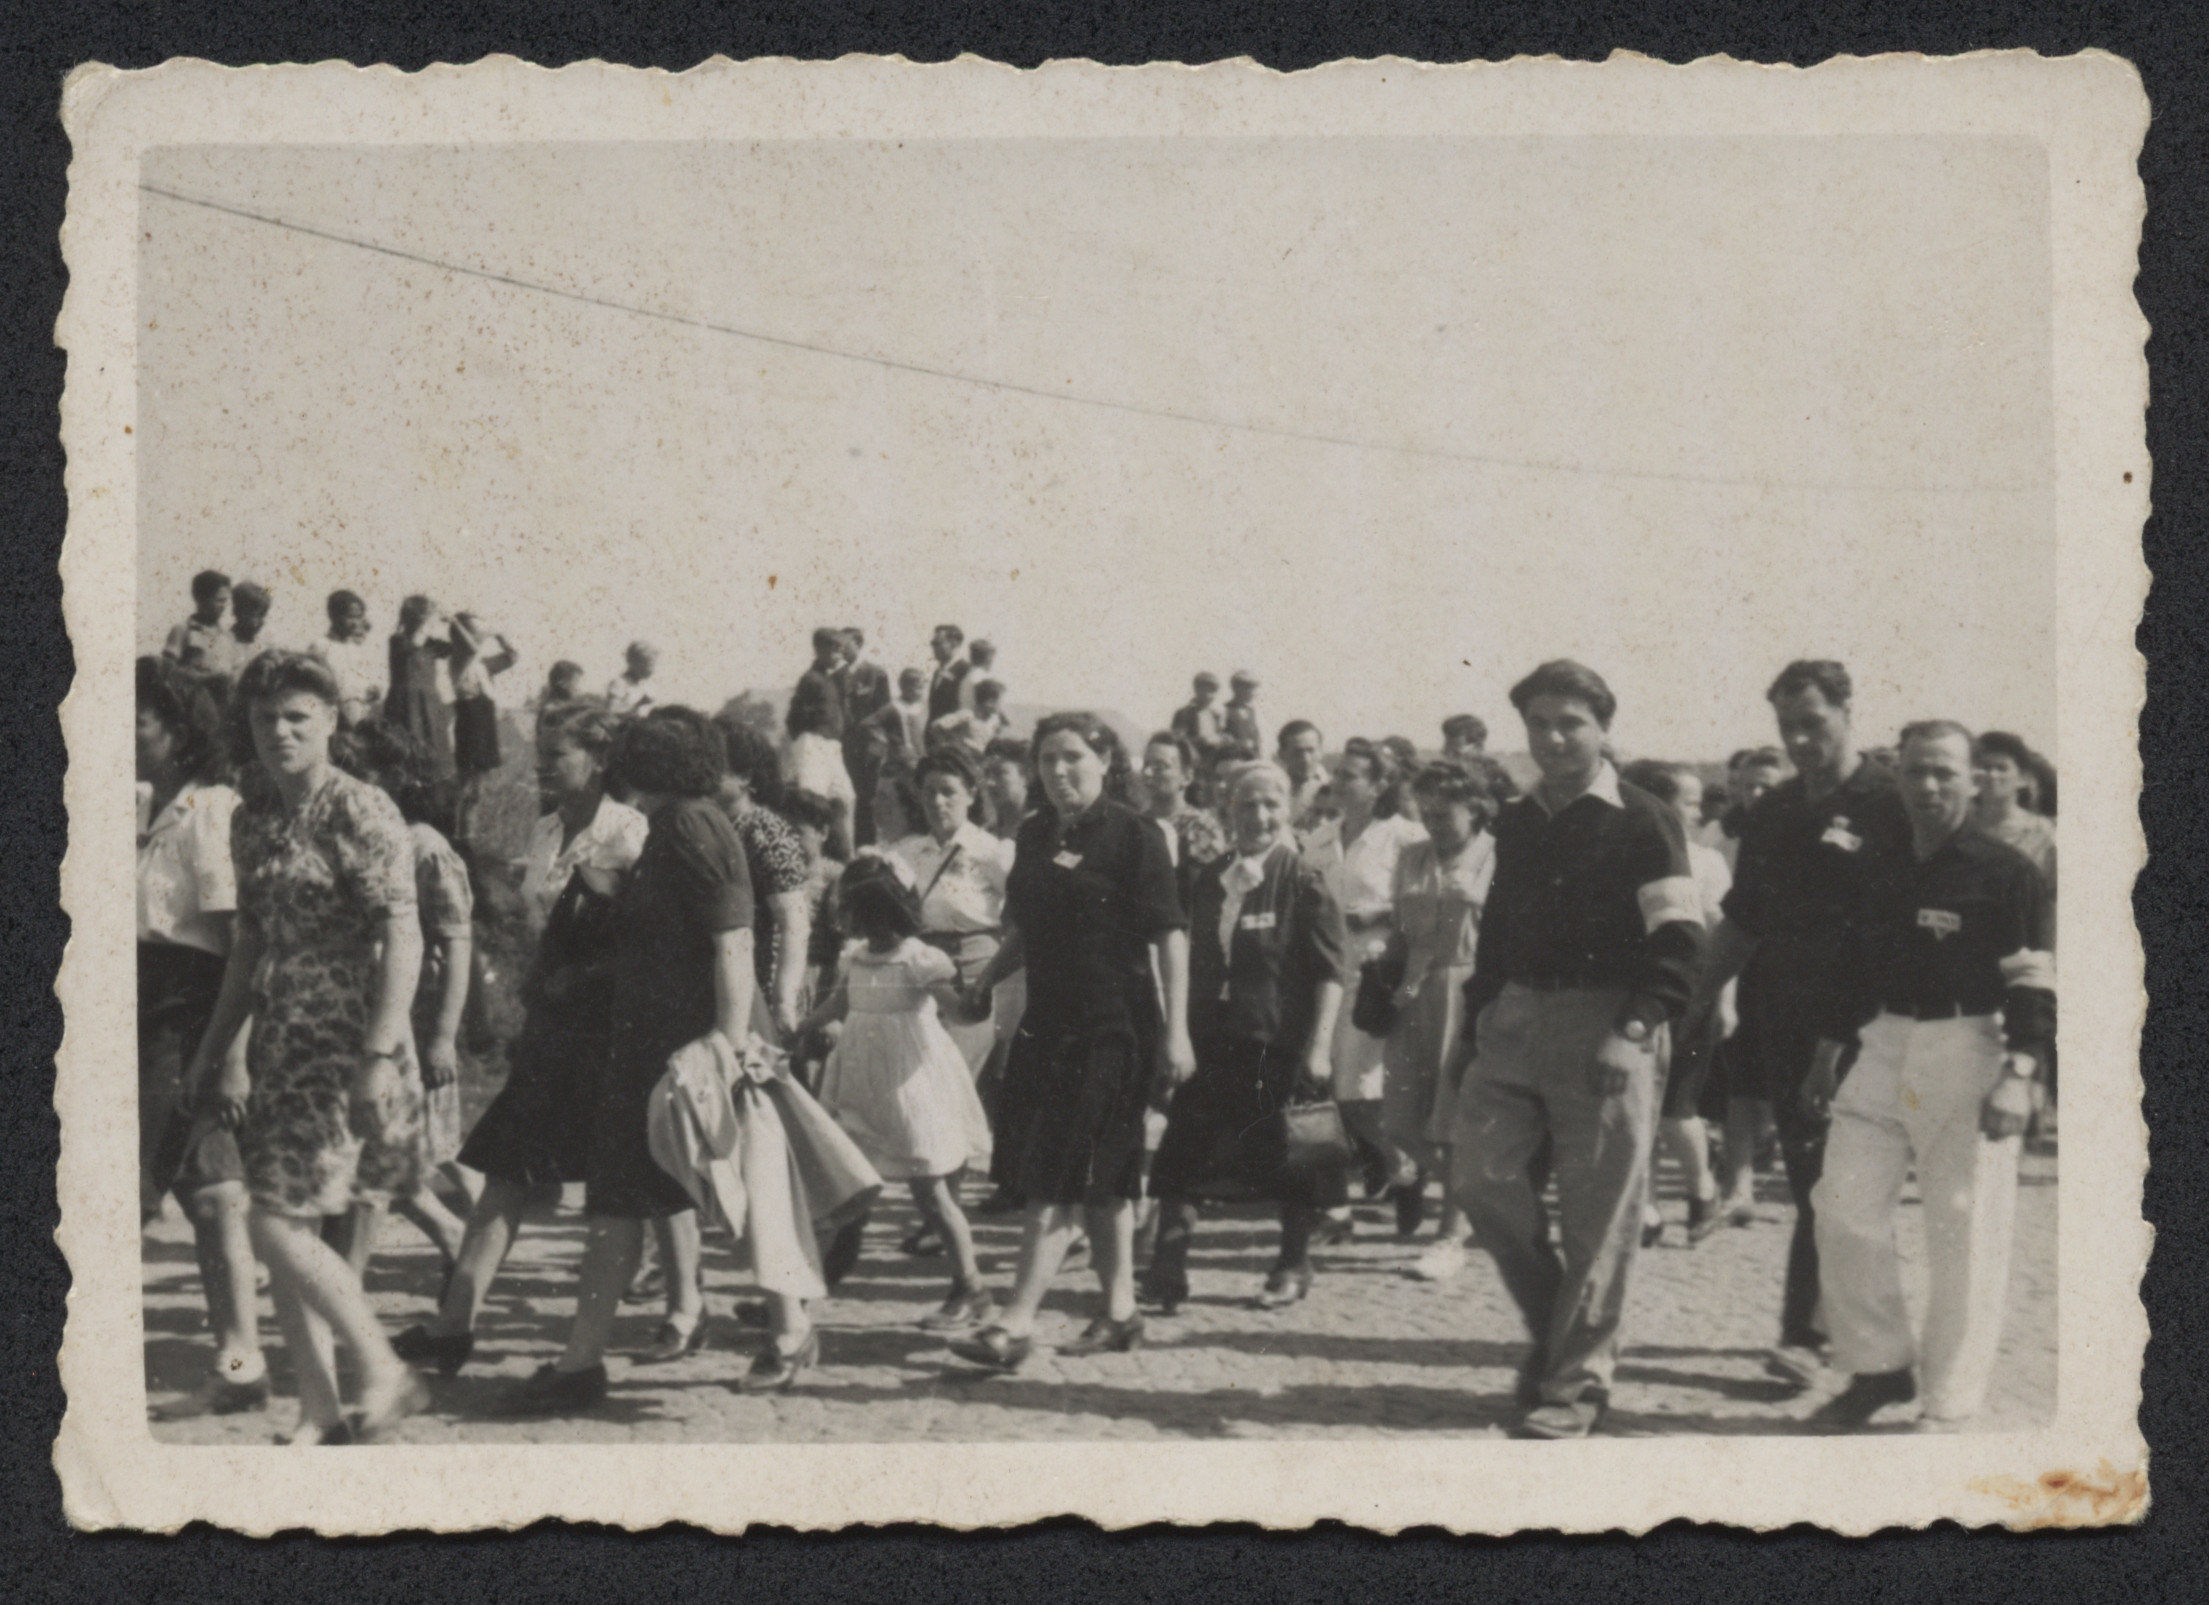 Men and women march [in what probably is a Zionist demonstration] in the Bindermichl displaced persons camp.  William Abraham is third from the right with an armband.